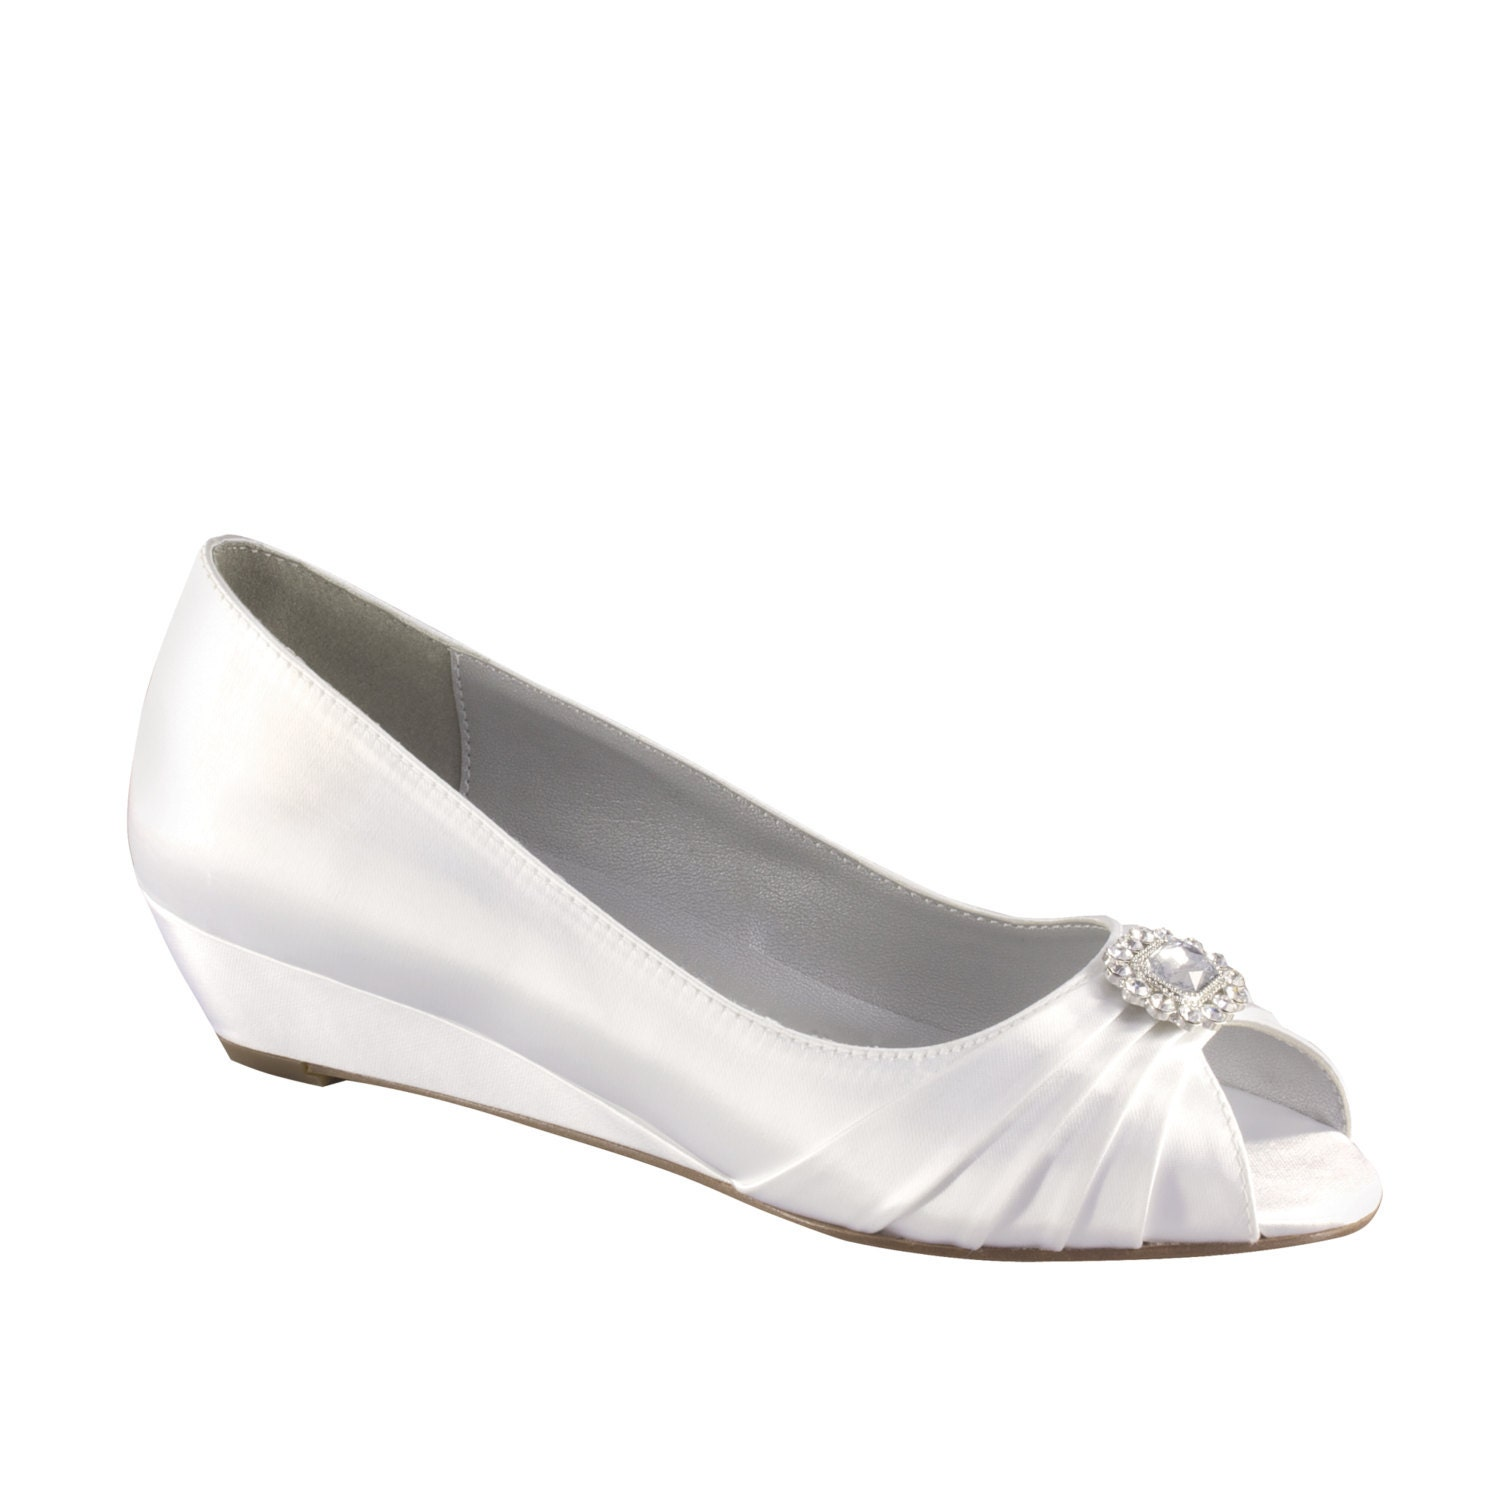 Wedding Wedge Heels: Wedding Shoes Wedge 1 Inch Wedge Heels Size By